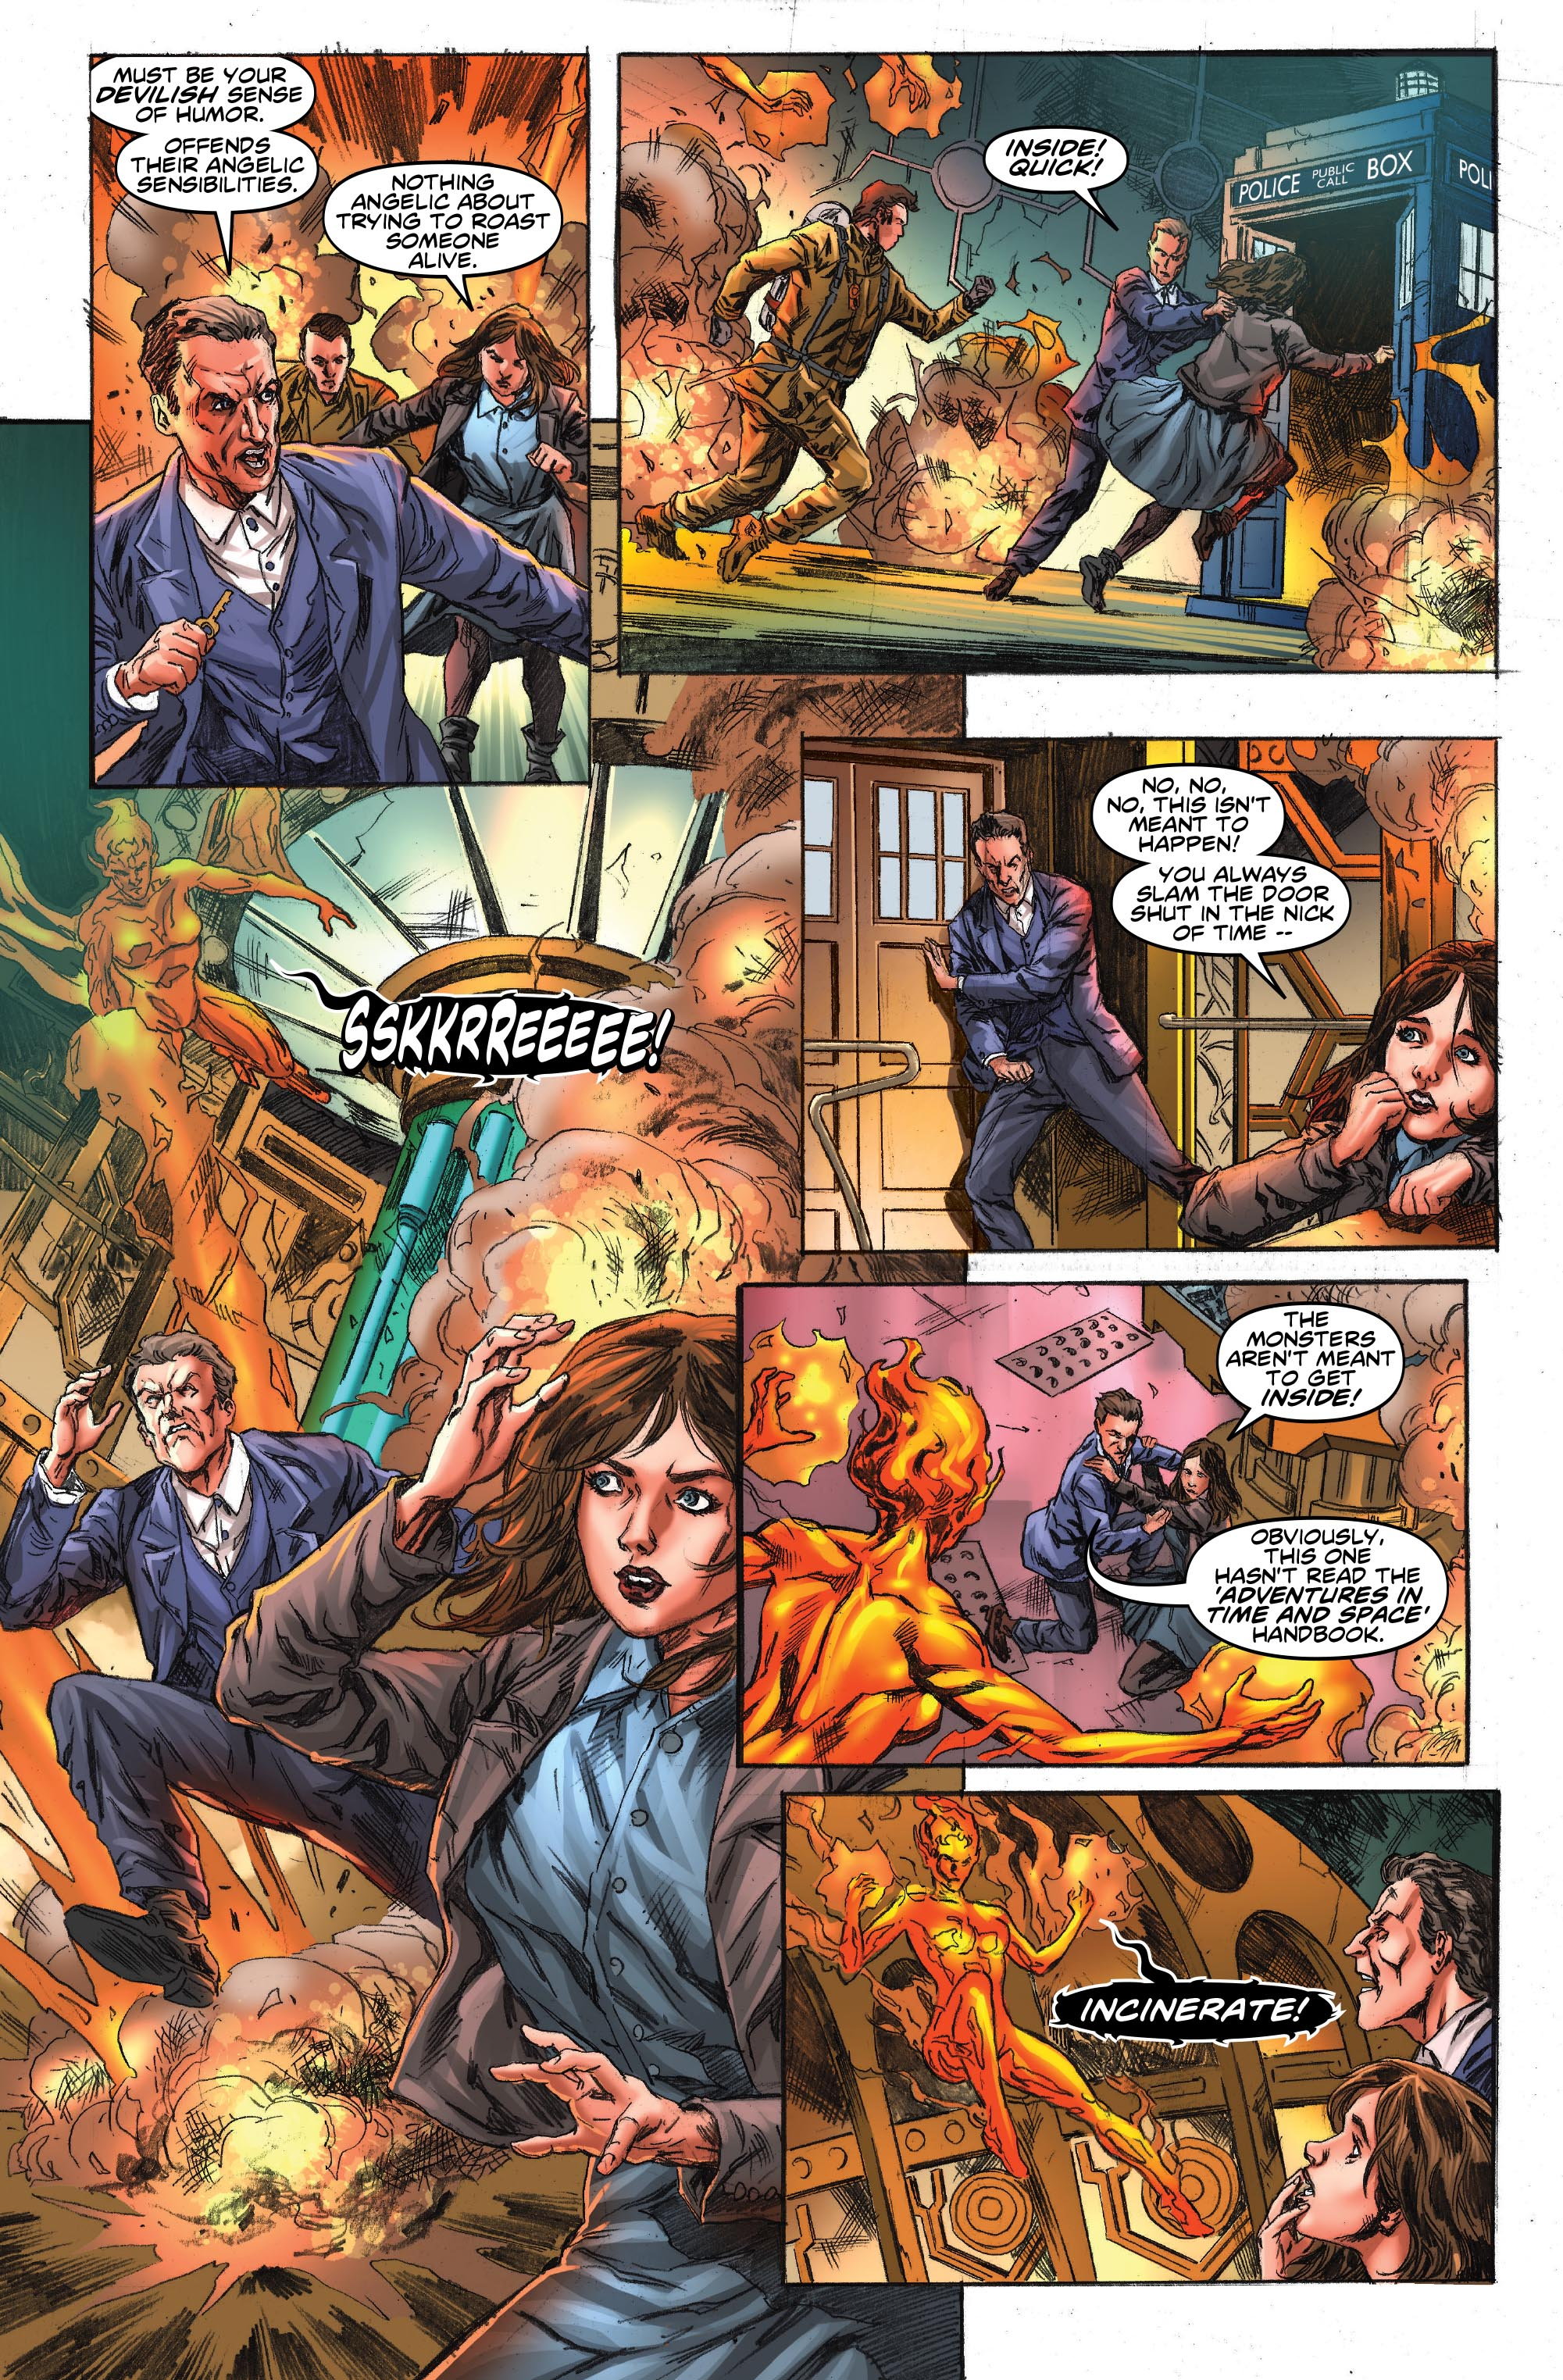 DOCTOR WHO: TWELFTH  #14 (Credit: Titan)